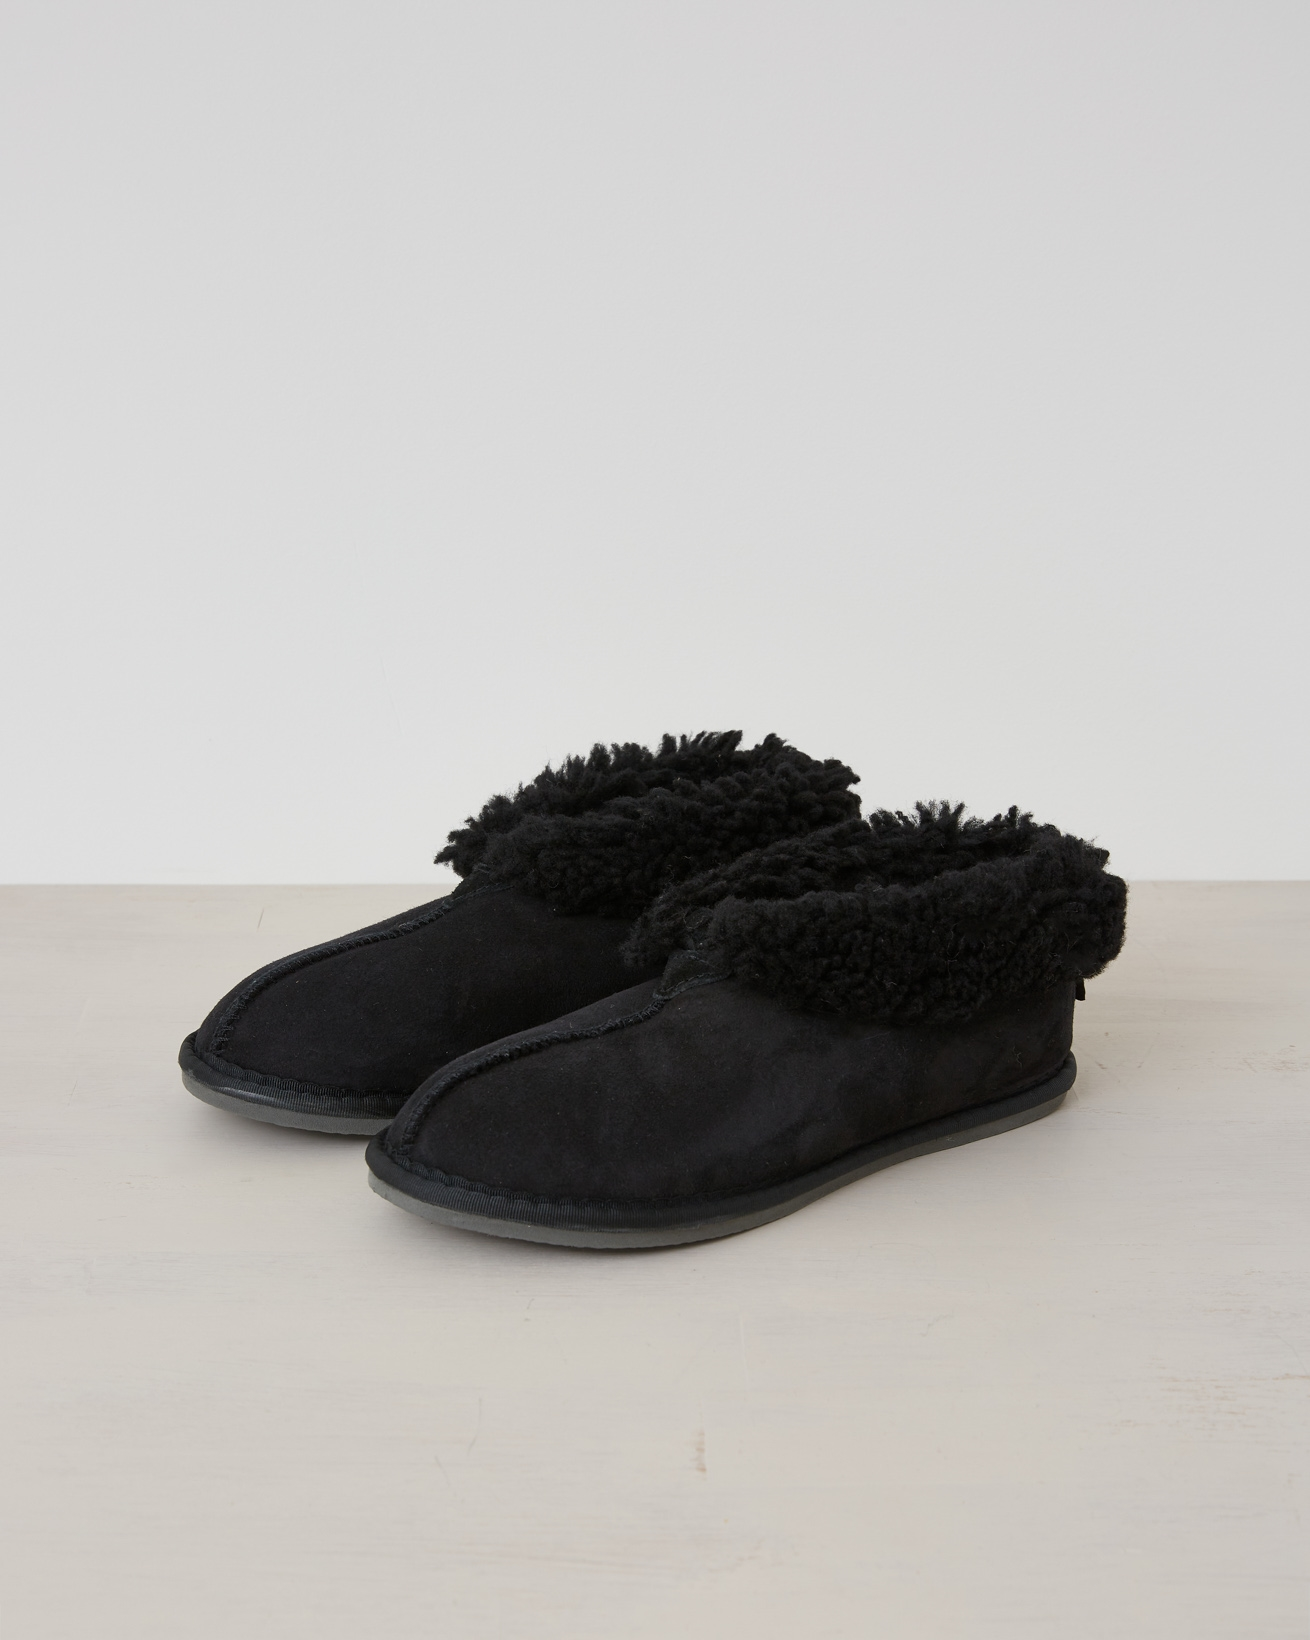 Mens Bootee Slipper - Black - Size 7 - 2540